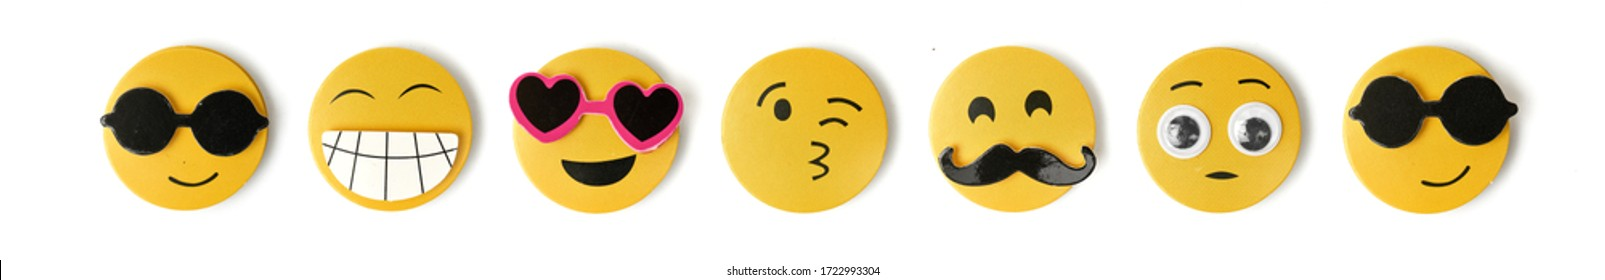 Yellow emoticons expressing emotions on a white background